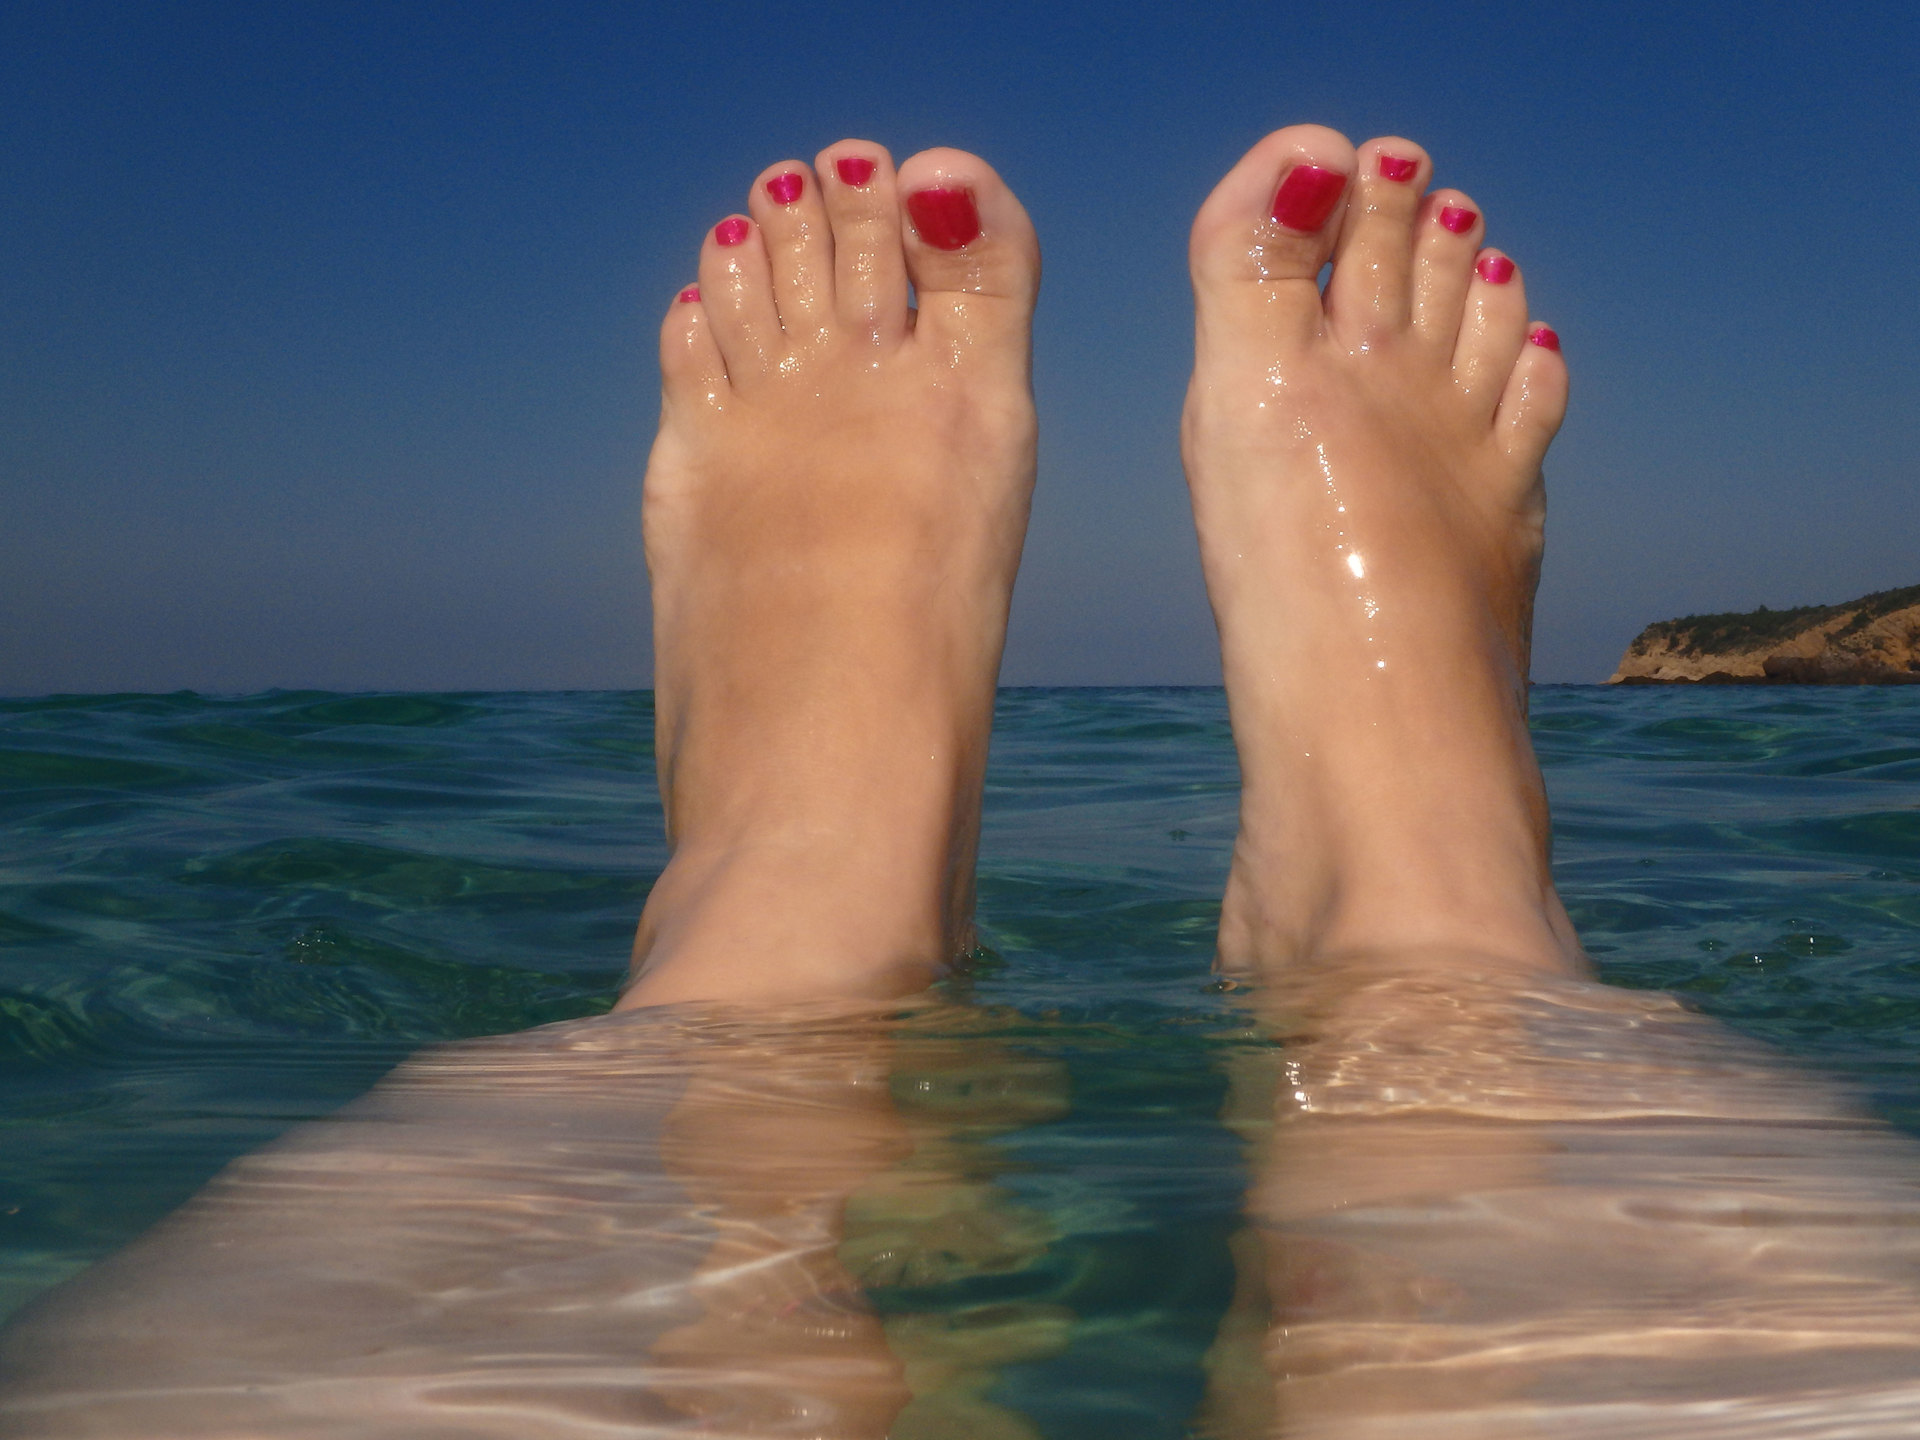 Foapcom Woman Feet Above Sea Level Woman Feet With Red Nail - Feet above sea level